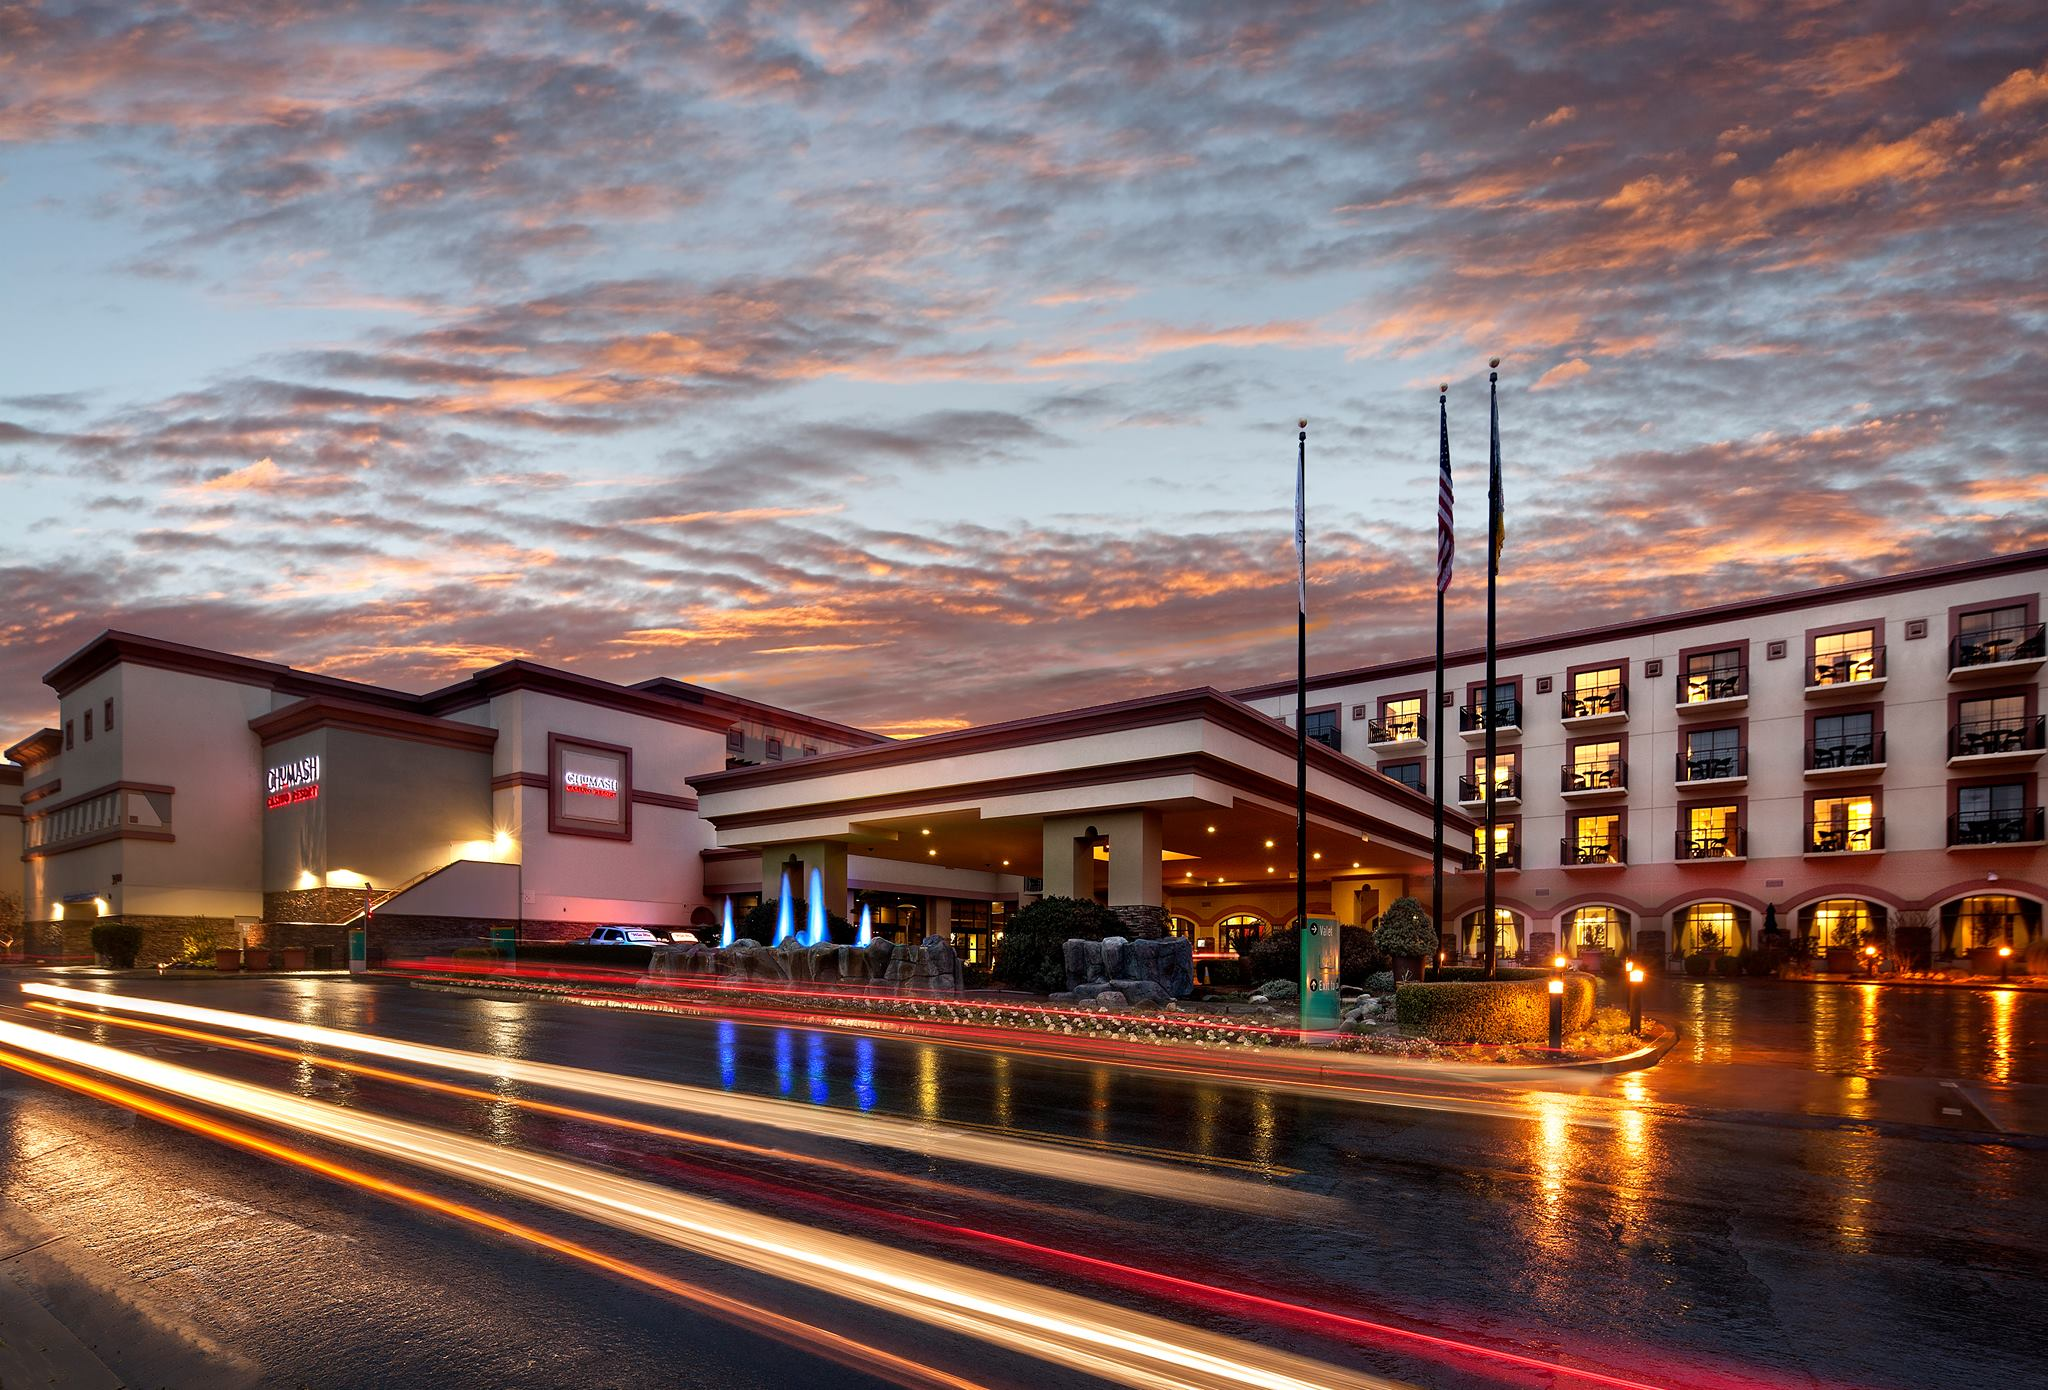 Wild horse casino resort